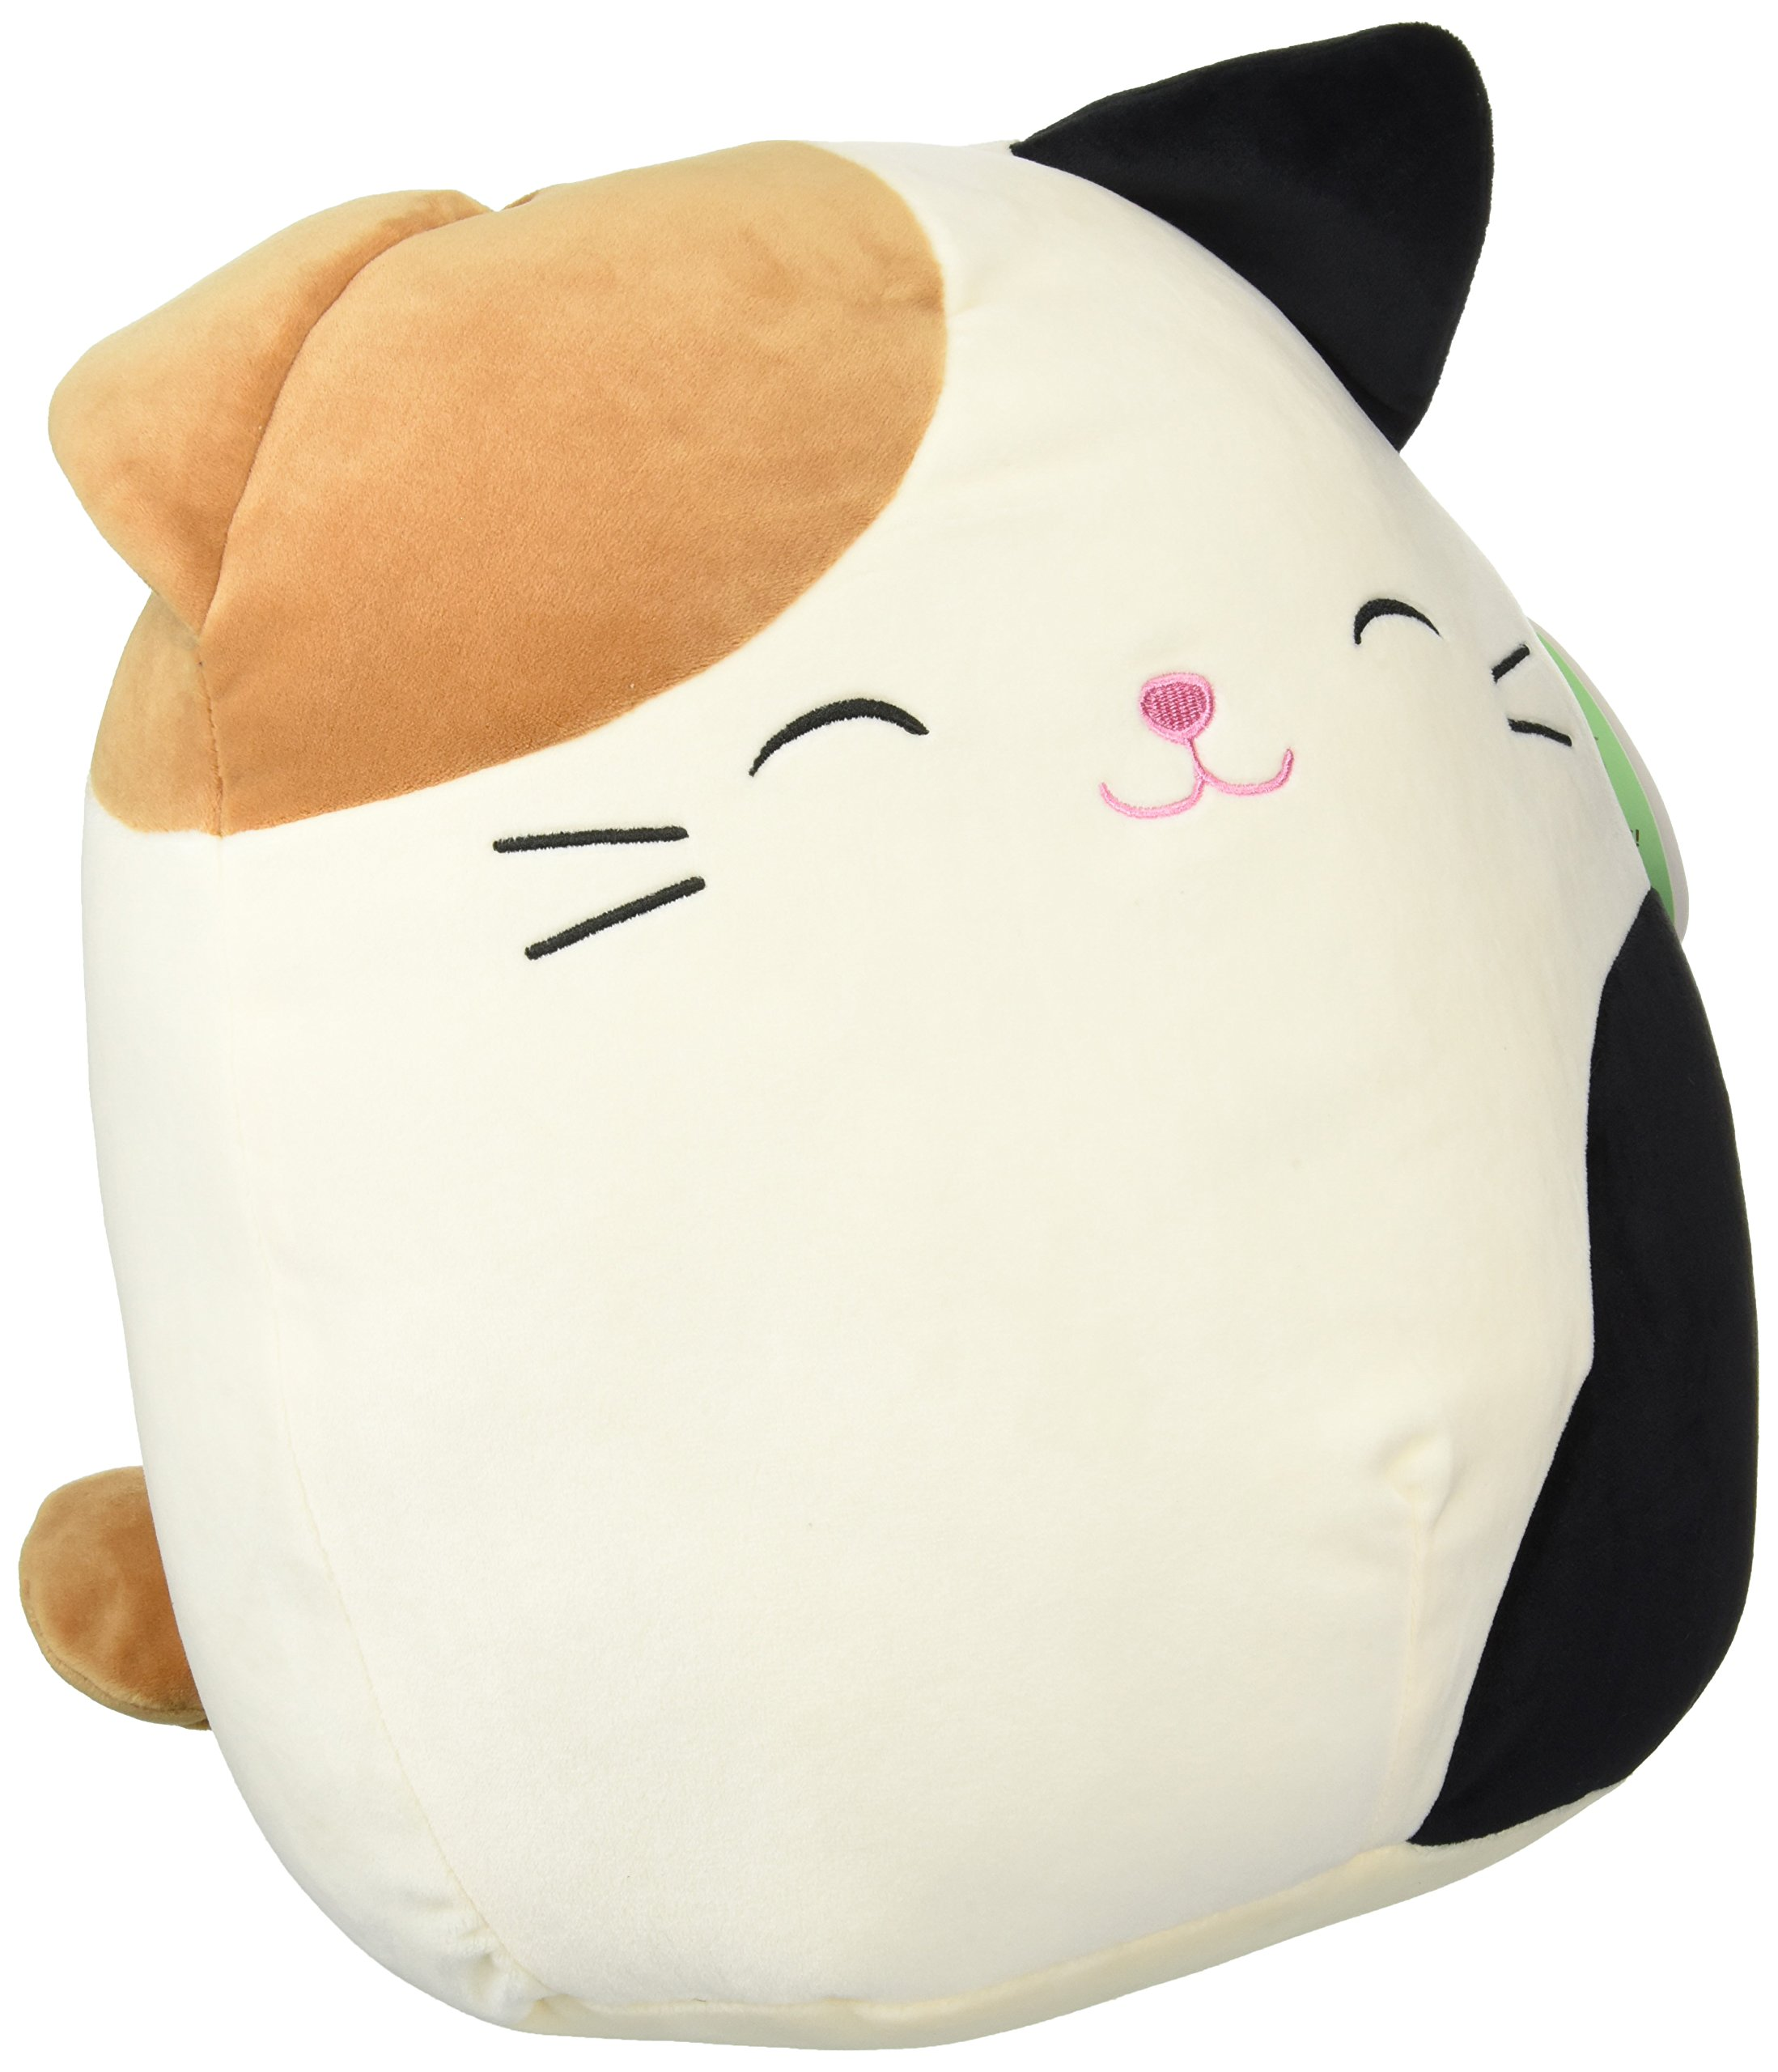 Kellytoy Squishmallow Cam The Cat 13'' Super Soft Plush Toy Pillow Pet Pal Buddy (13 inches)